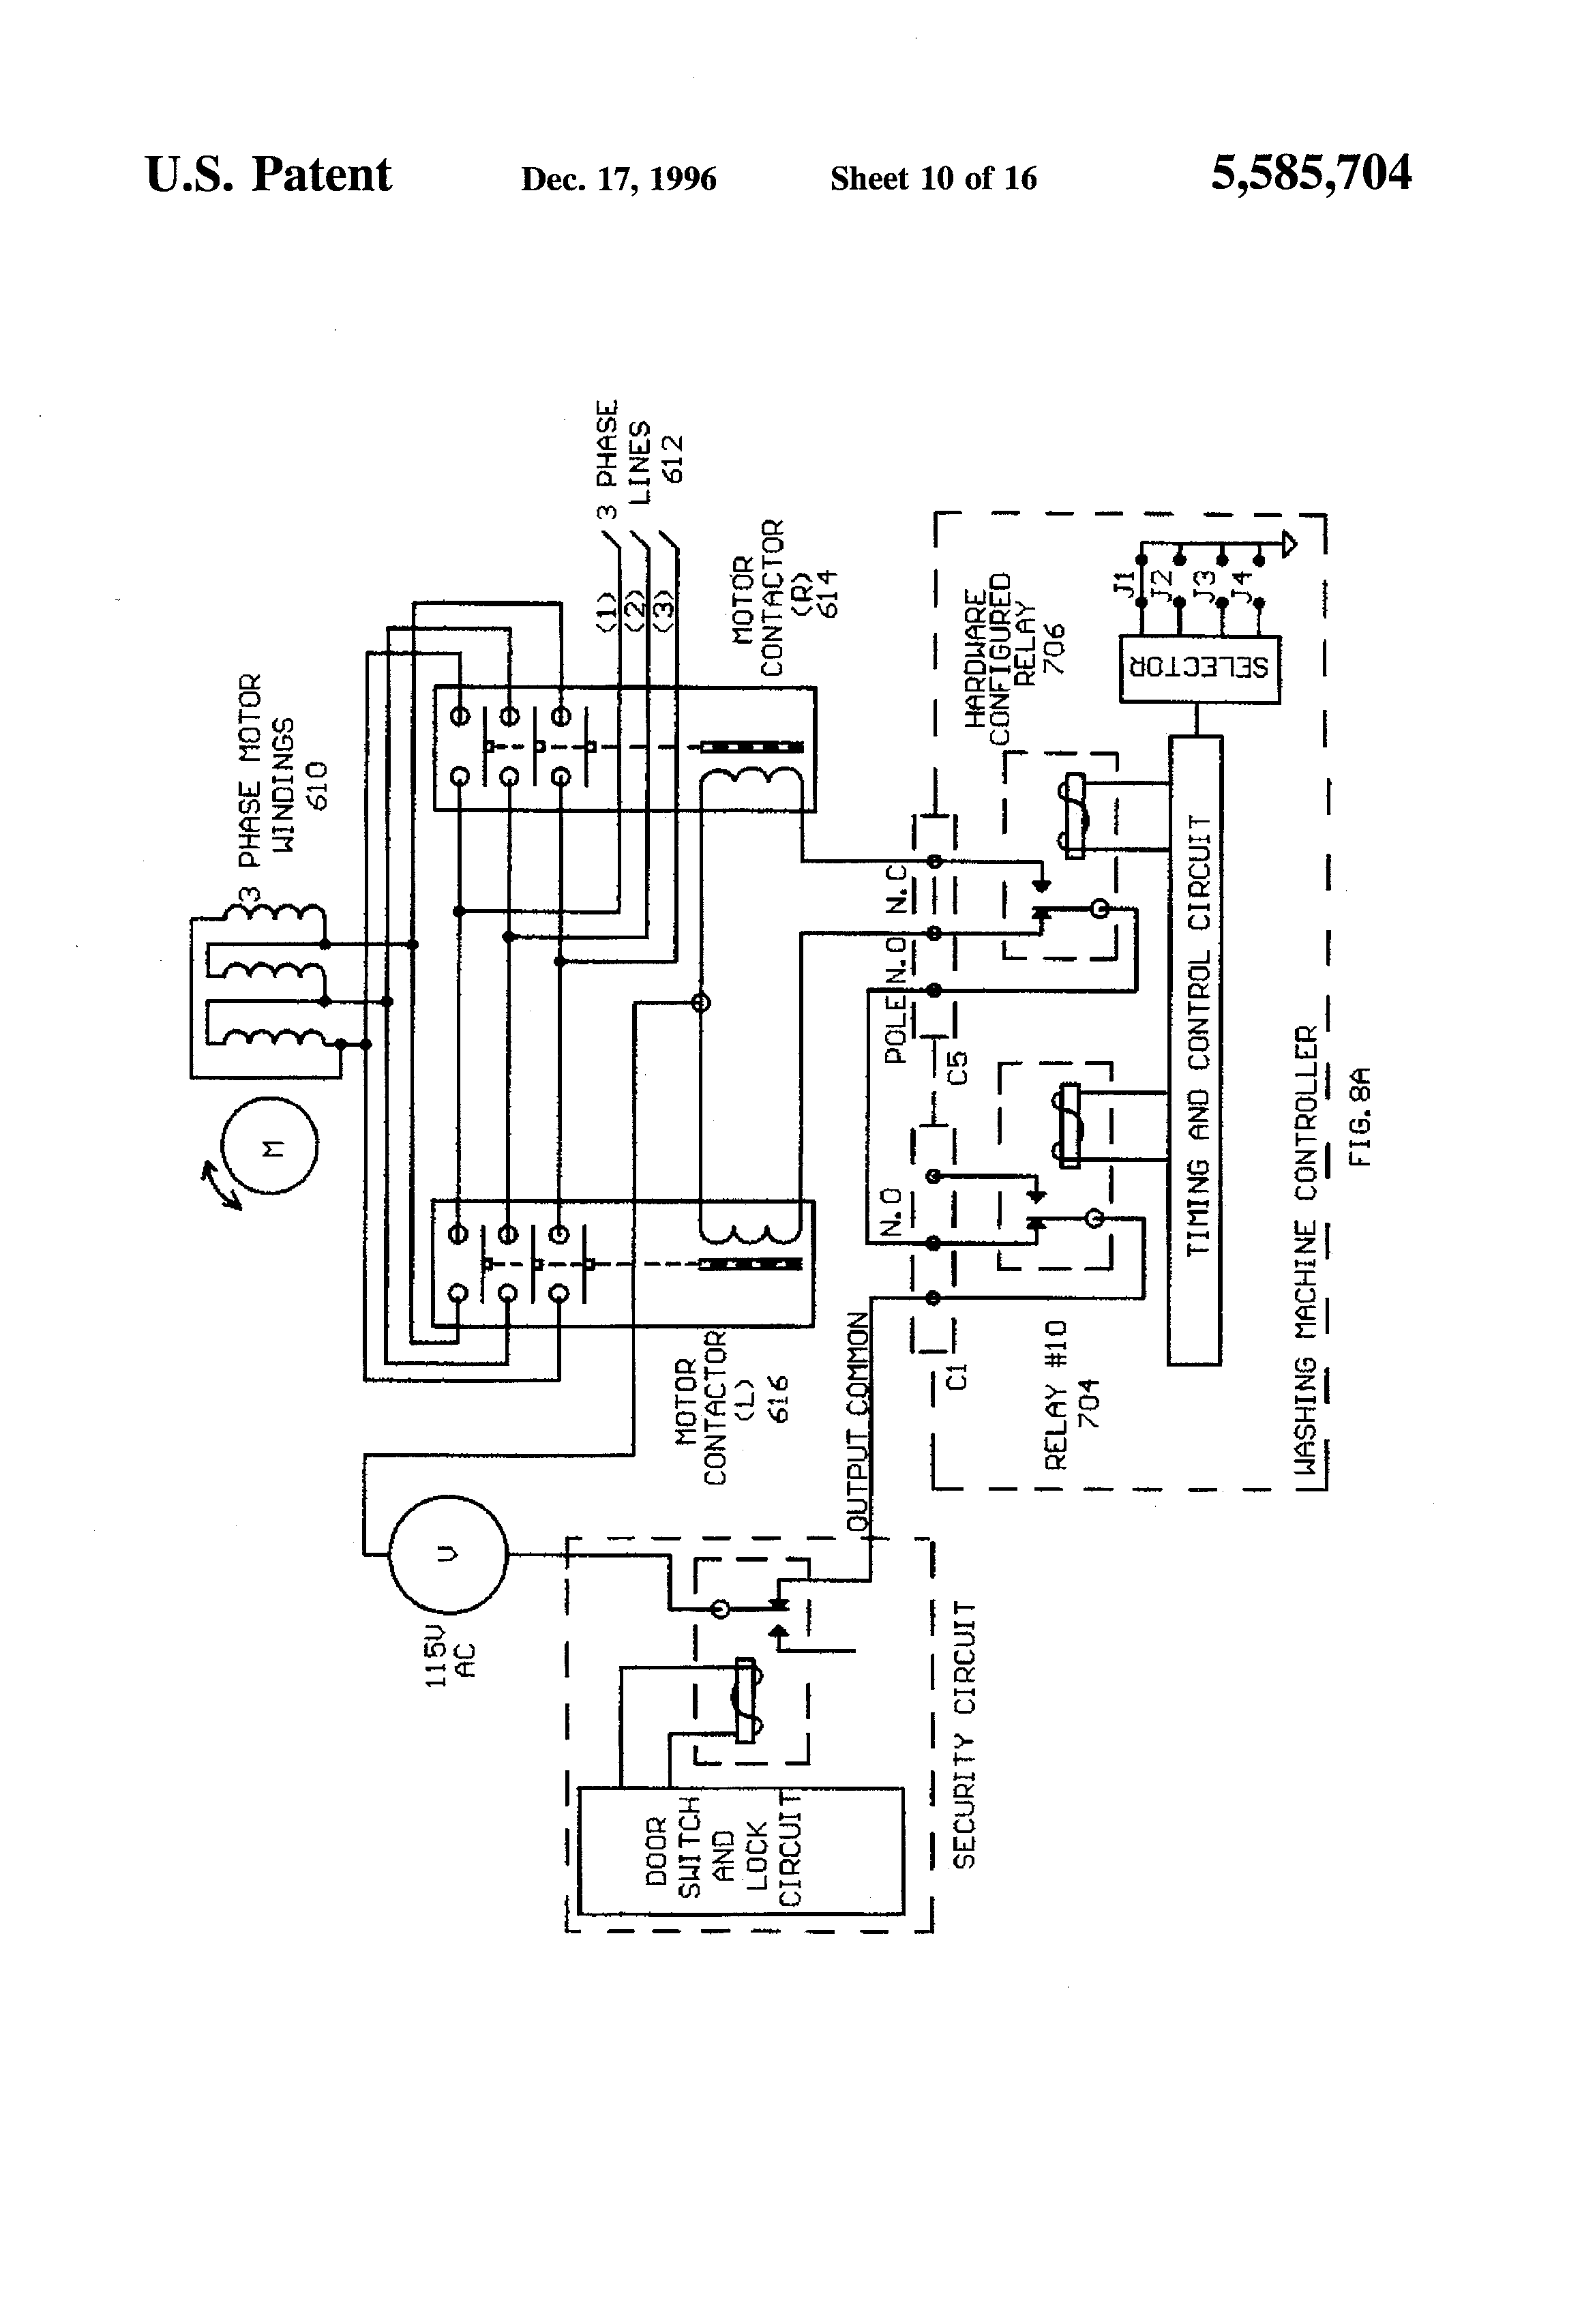 US5585704 10 wiring diagram for samsung washer samsung automatic washing wiring diagram for samsung vrt washer at bayanpartner.co